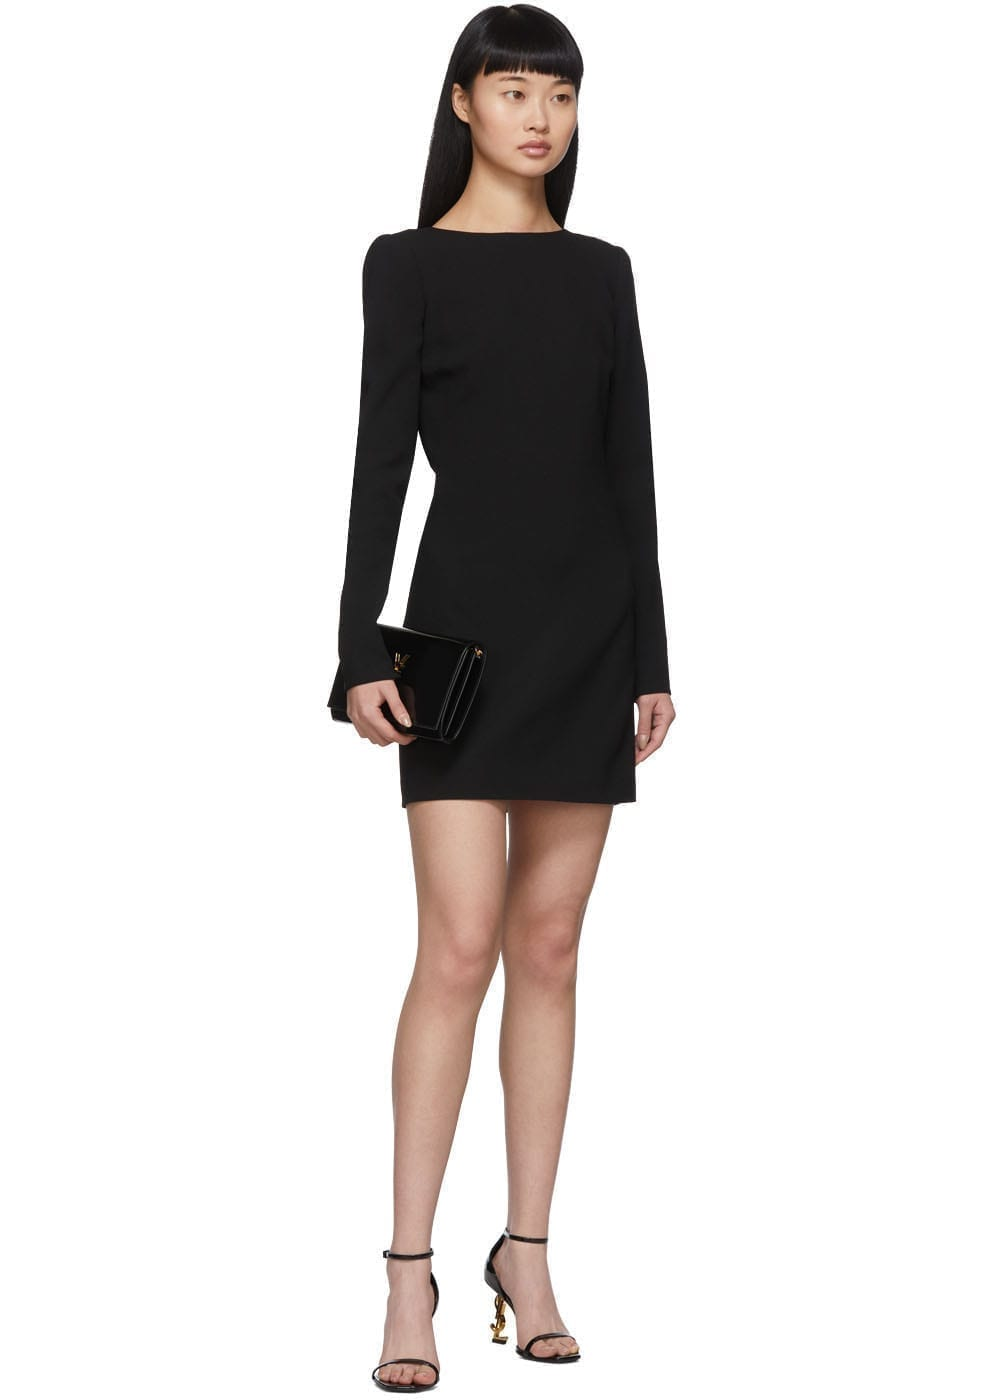 SAINT LAURENT Black Knot Back Dress